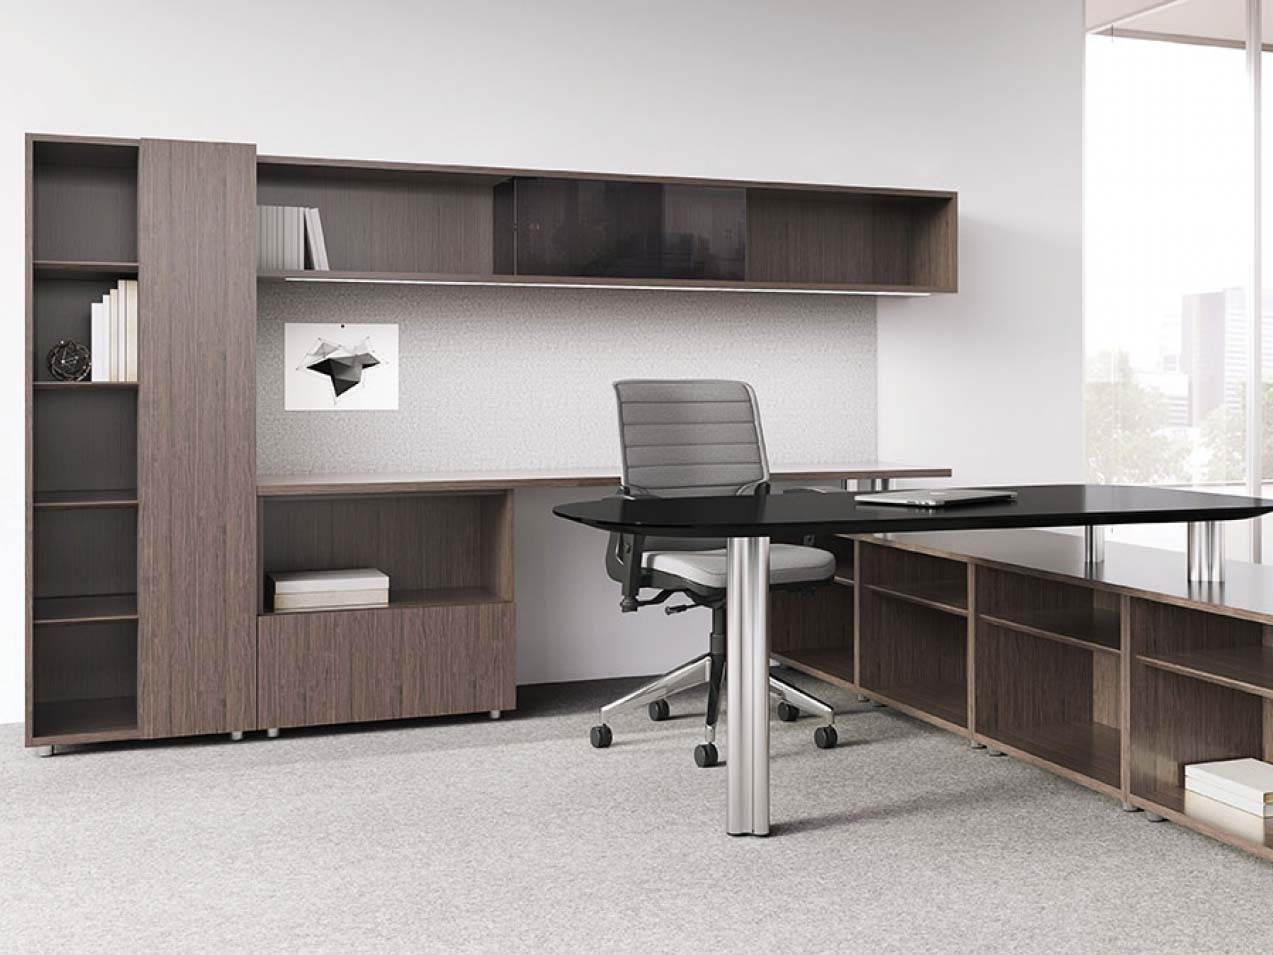 Ofs Aptos Office Furniture Warehouse